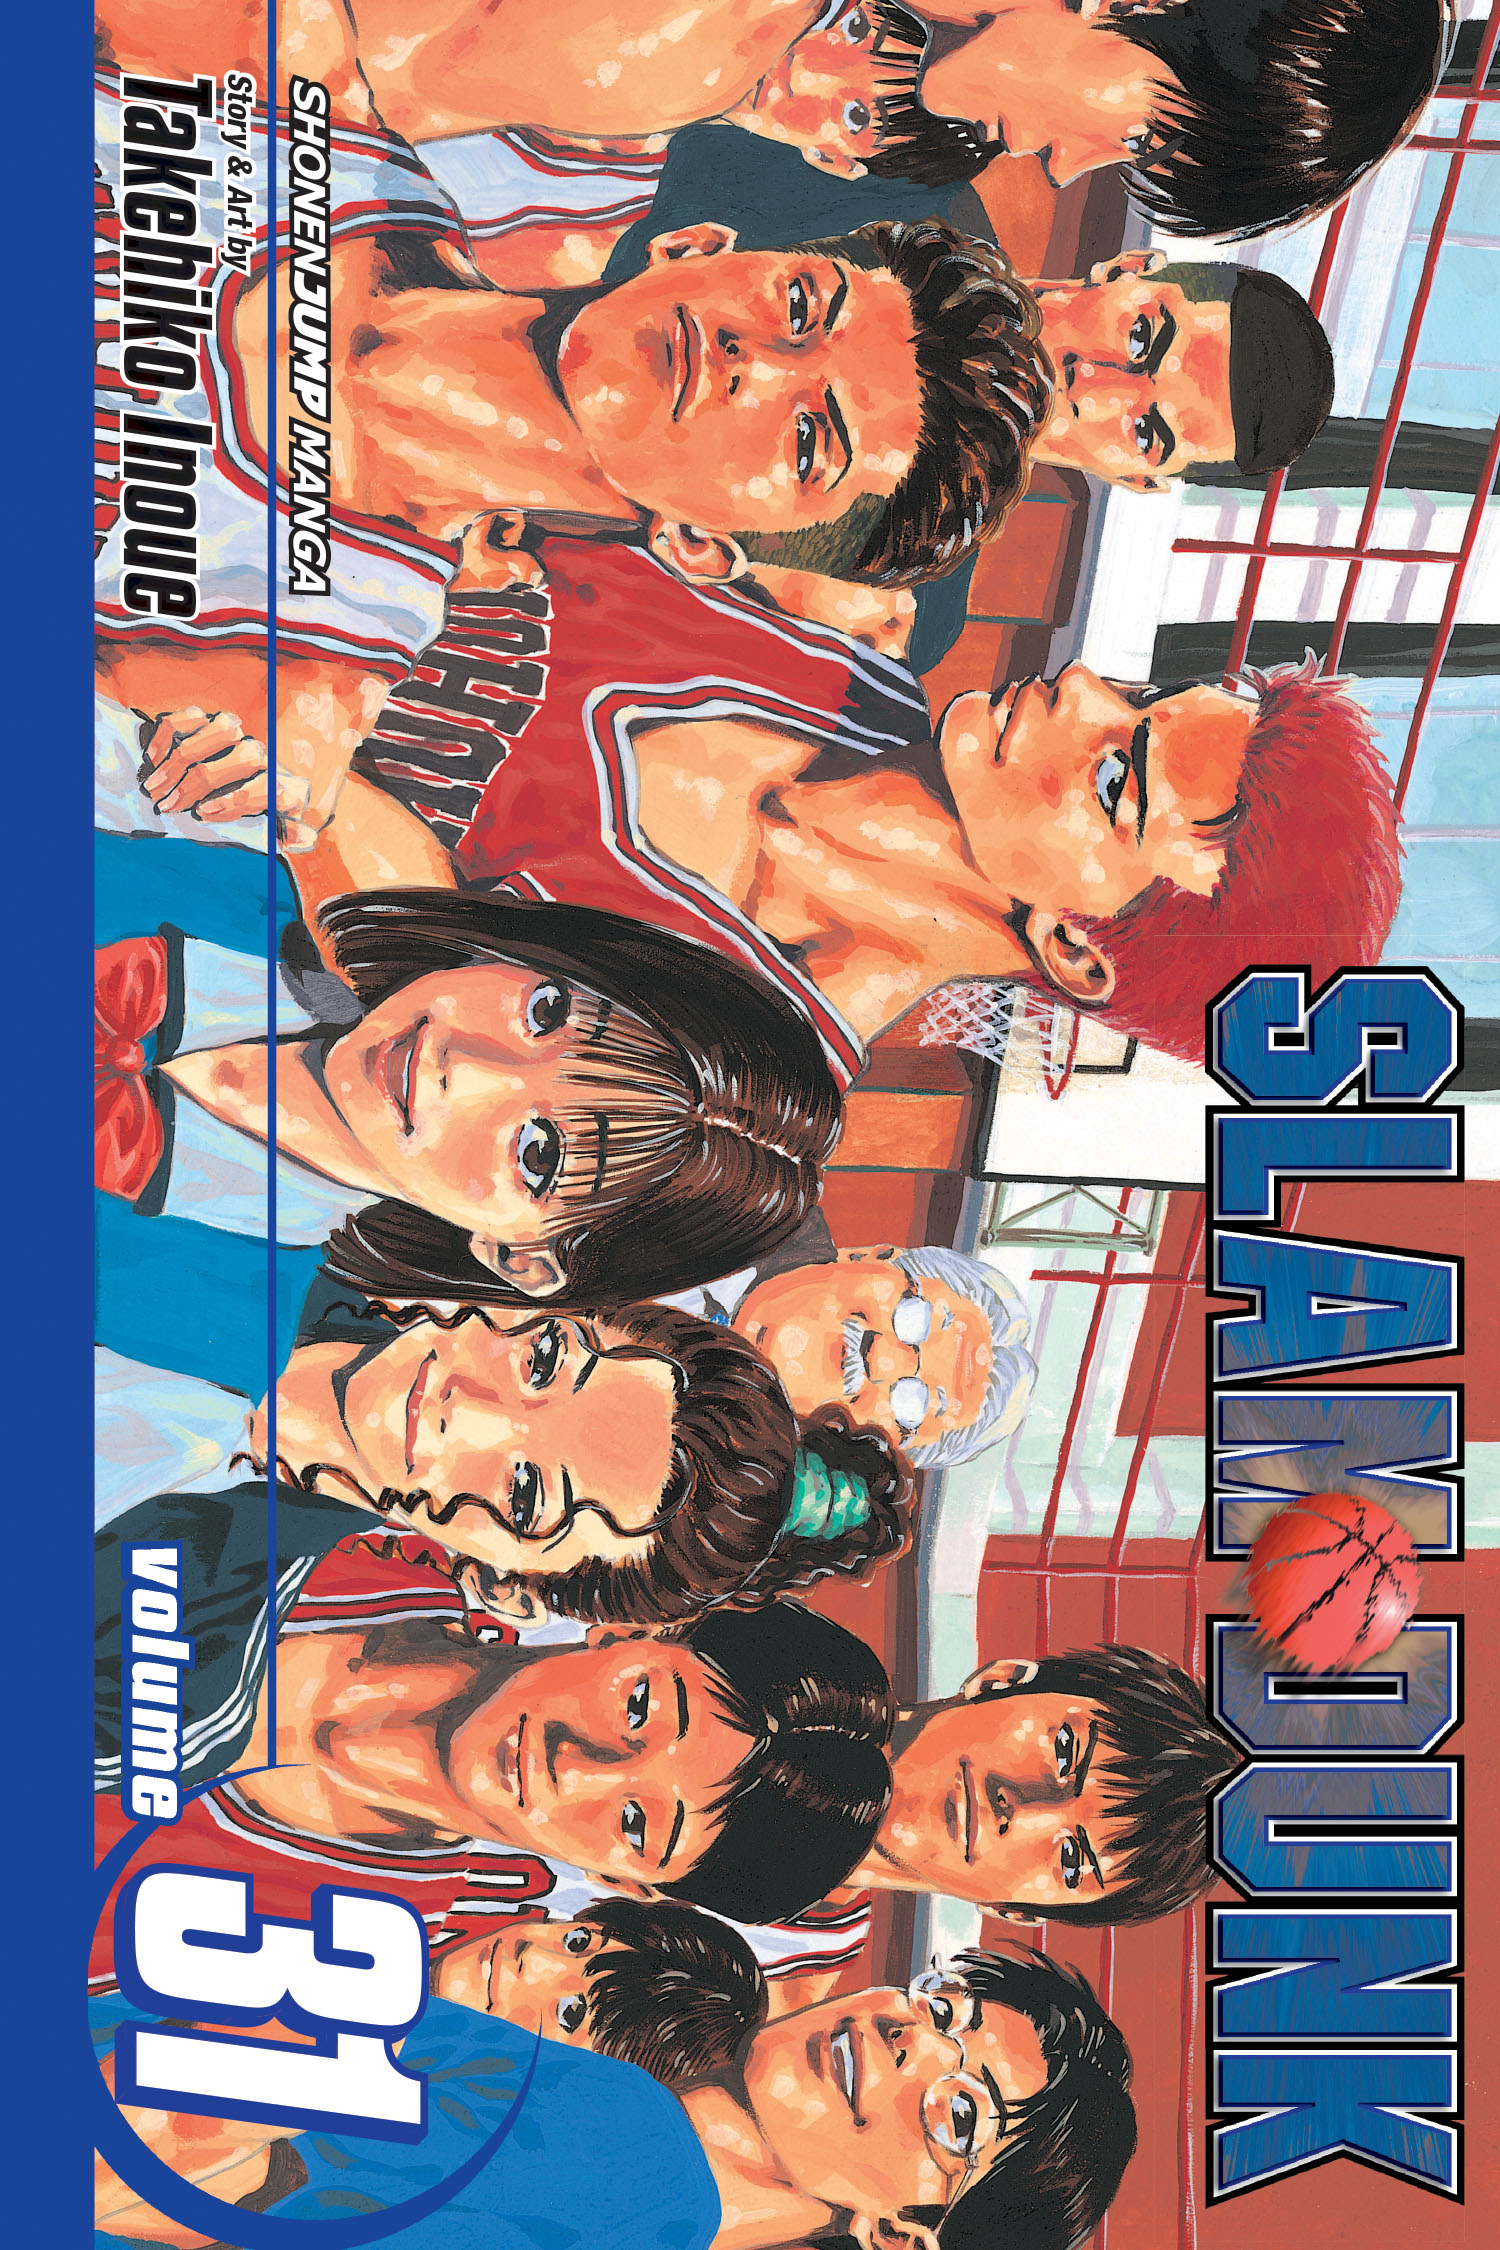 Slam-dunk-vol-31-9781421533384_hr